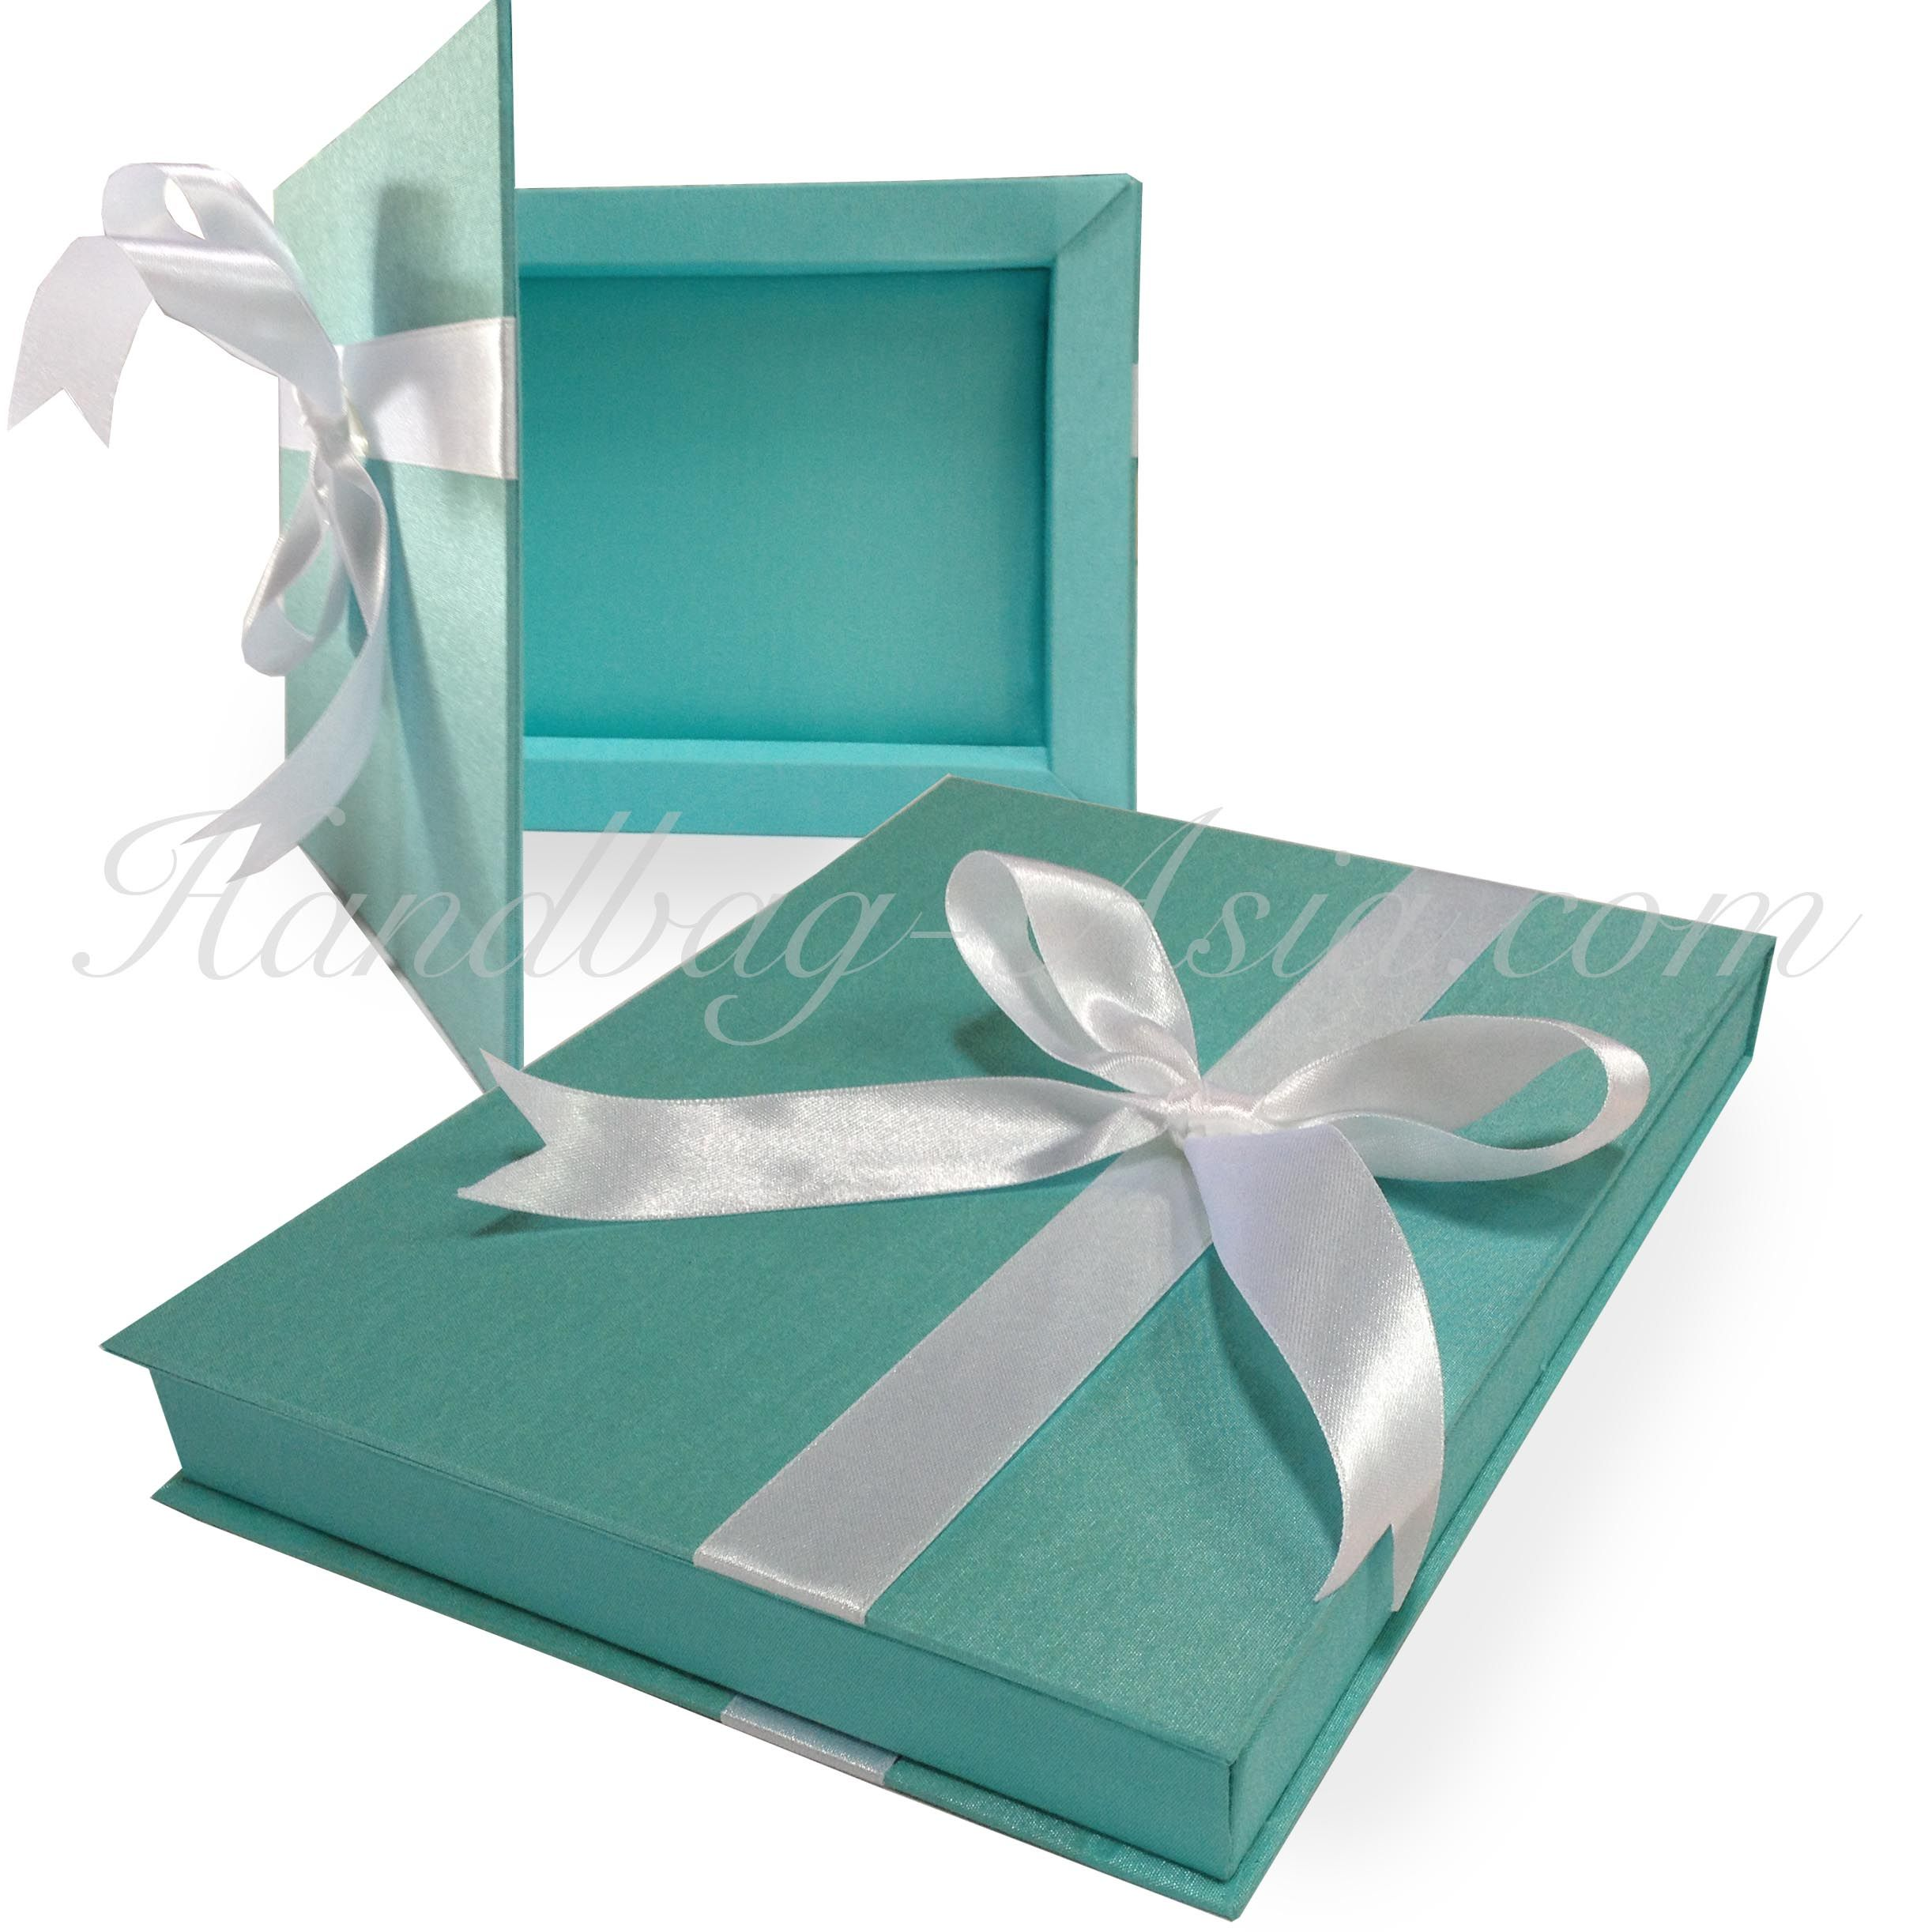 Silk Box For Glass Invitations. Pack your luxury glass